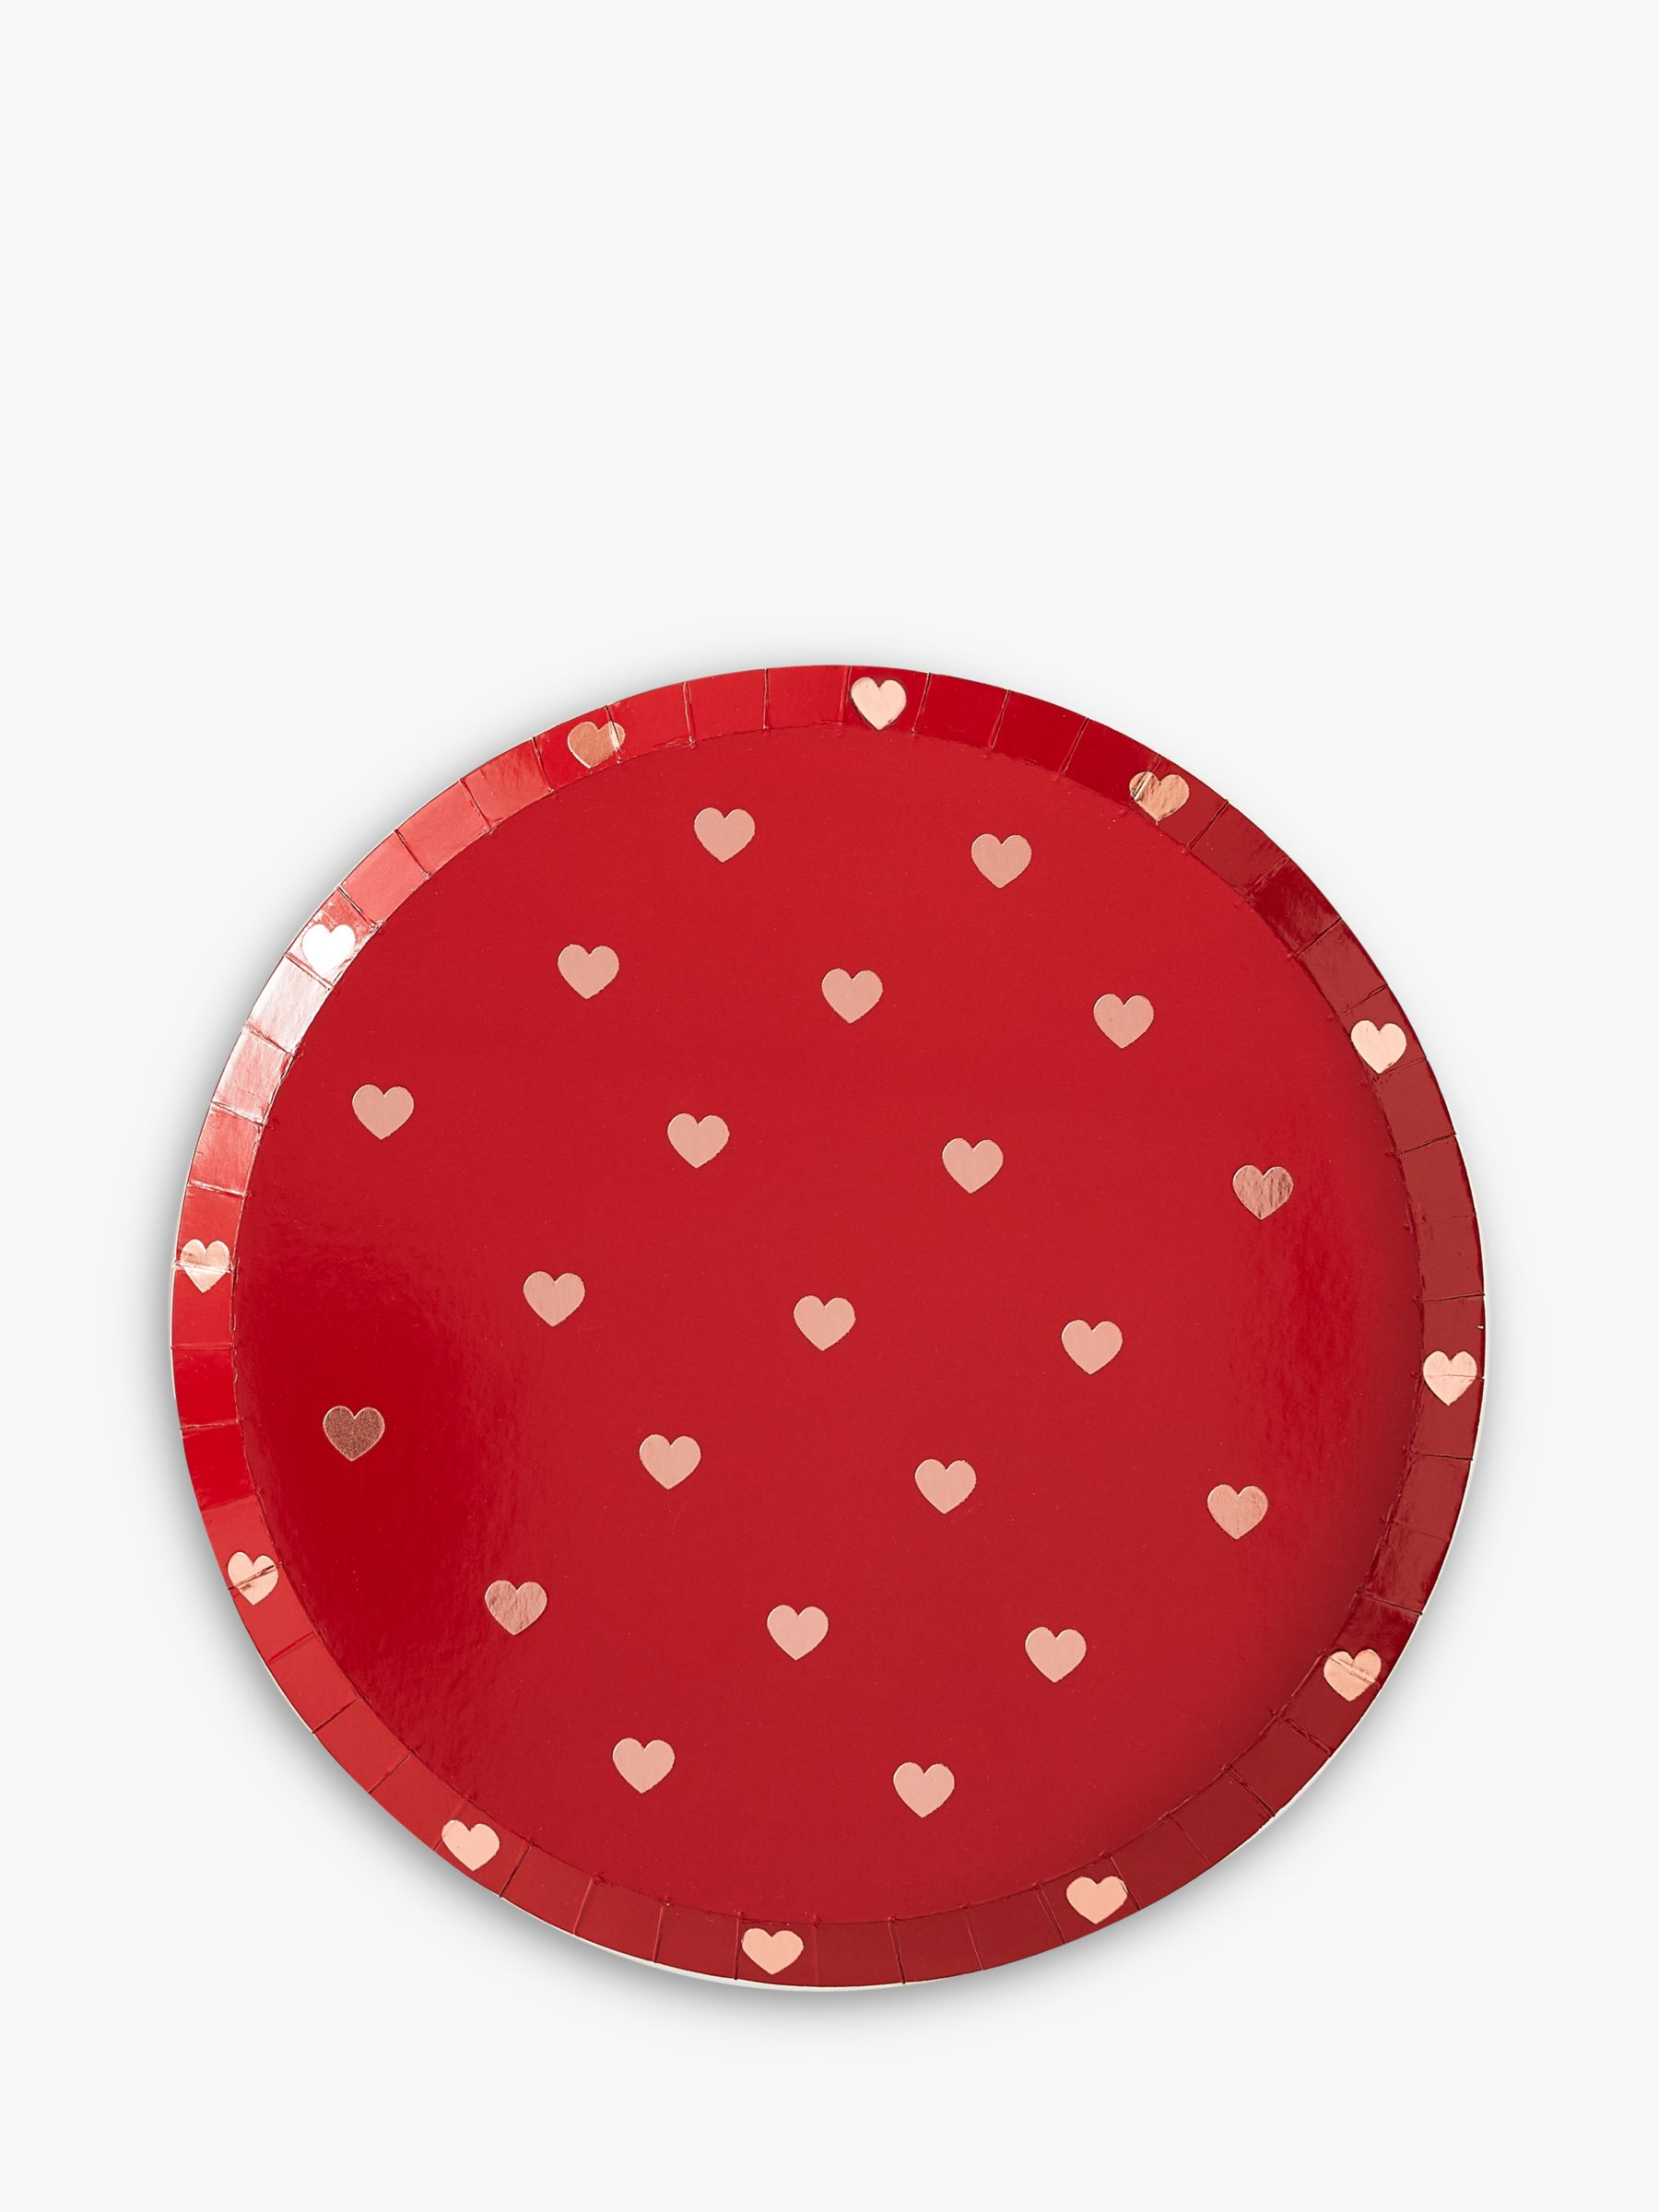 Ginger Ray Ginger Ray Heart Cutout Disposable Plates, Pack of 8